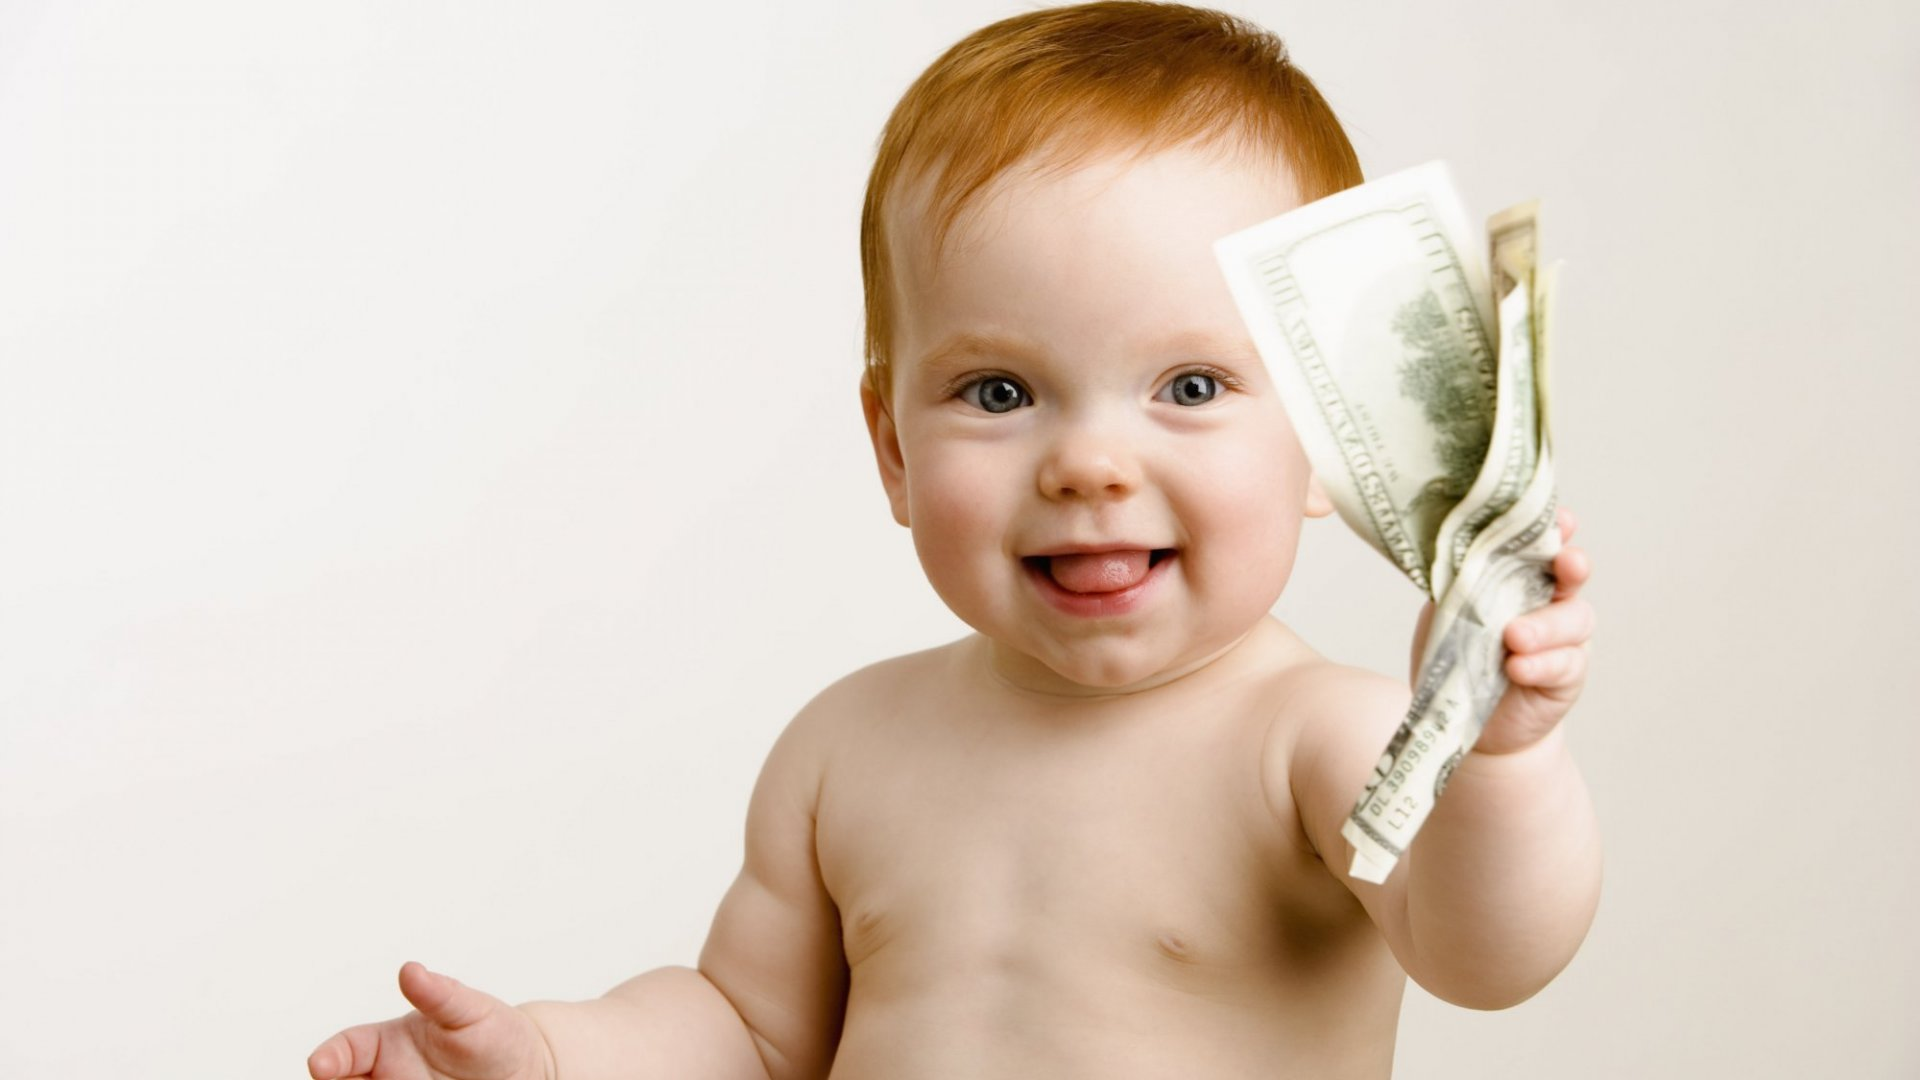 Want to Raise Super Wealthy Kids? Have Sex in March, April, or May